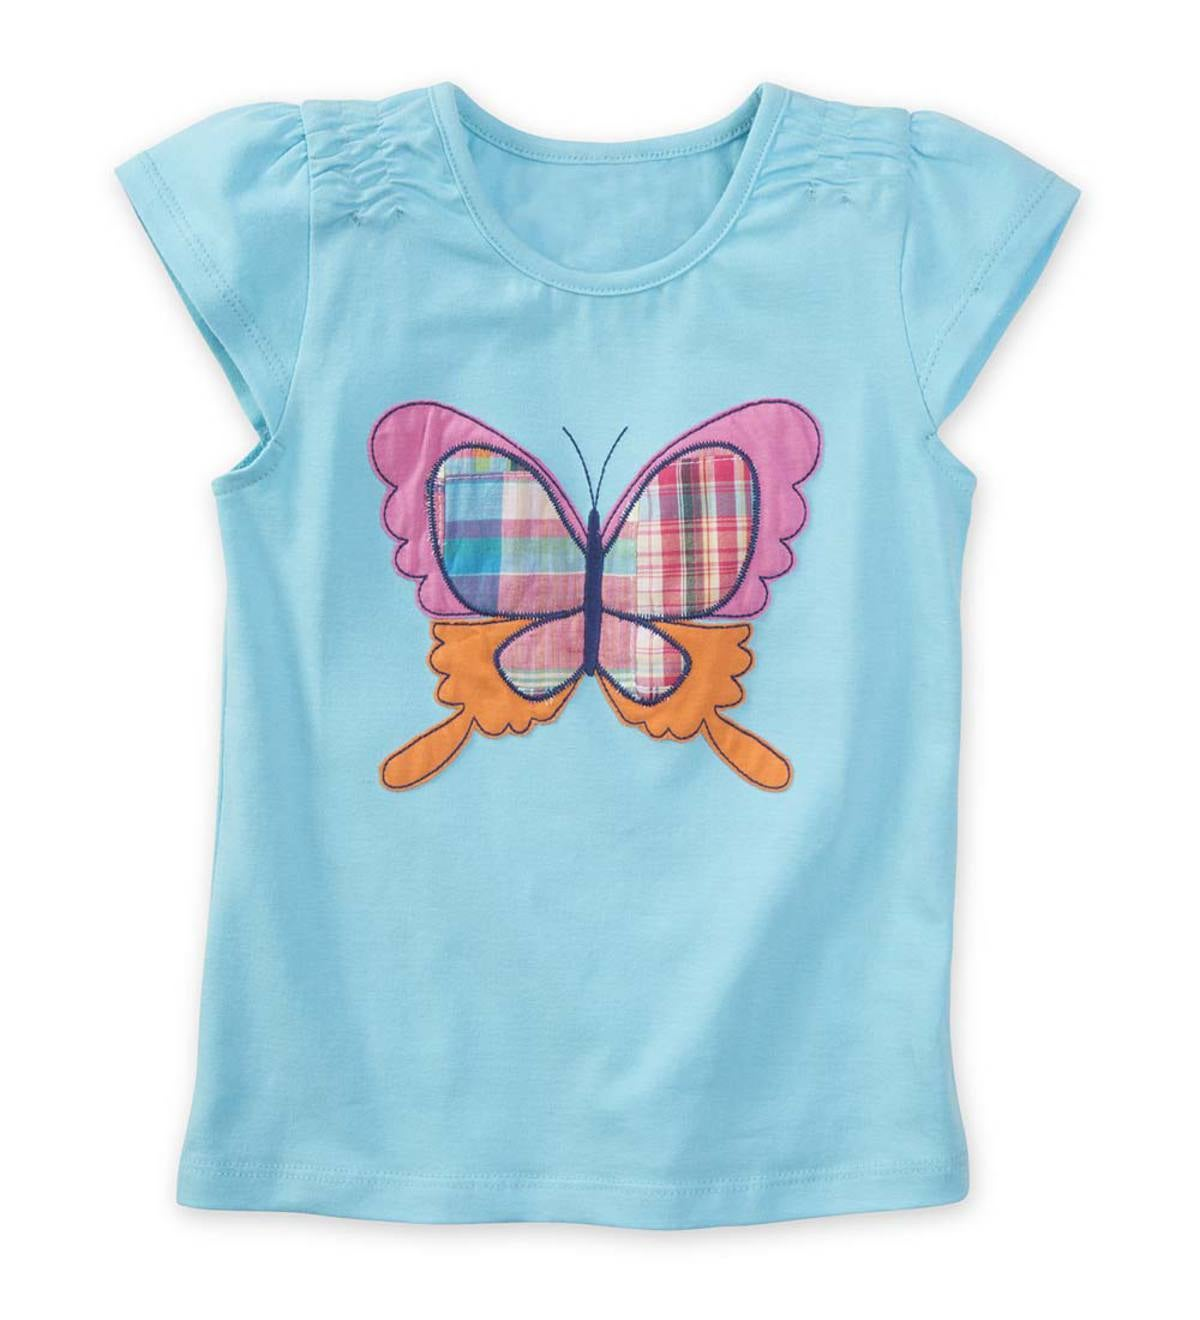 Cap Sleeve Plaid Butterfly Tee - 3T